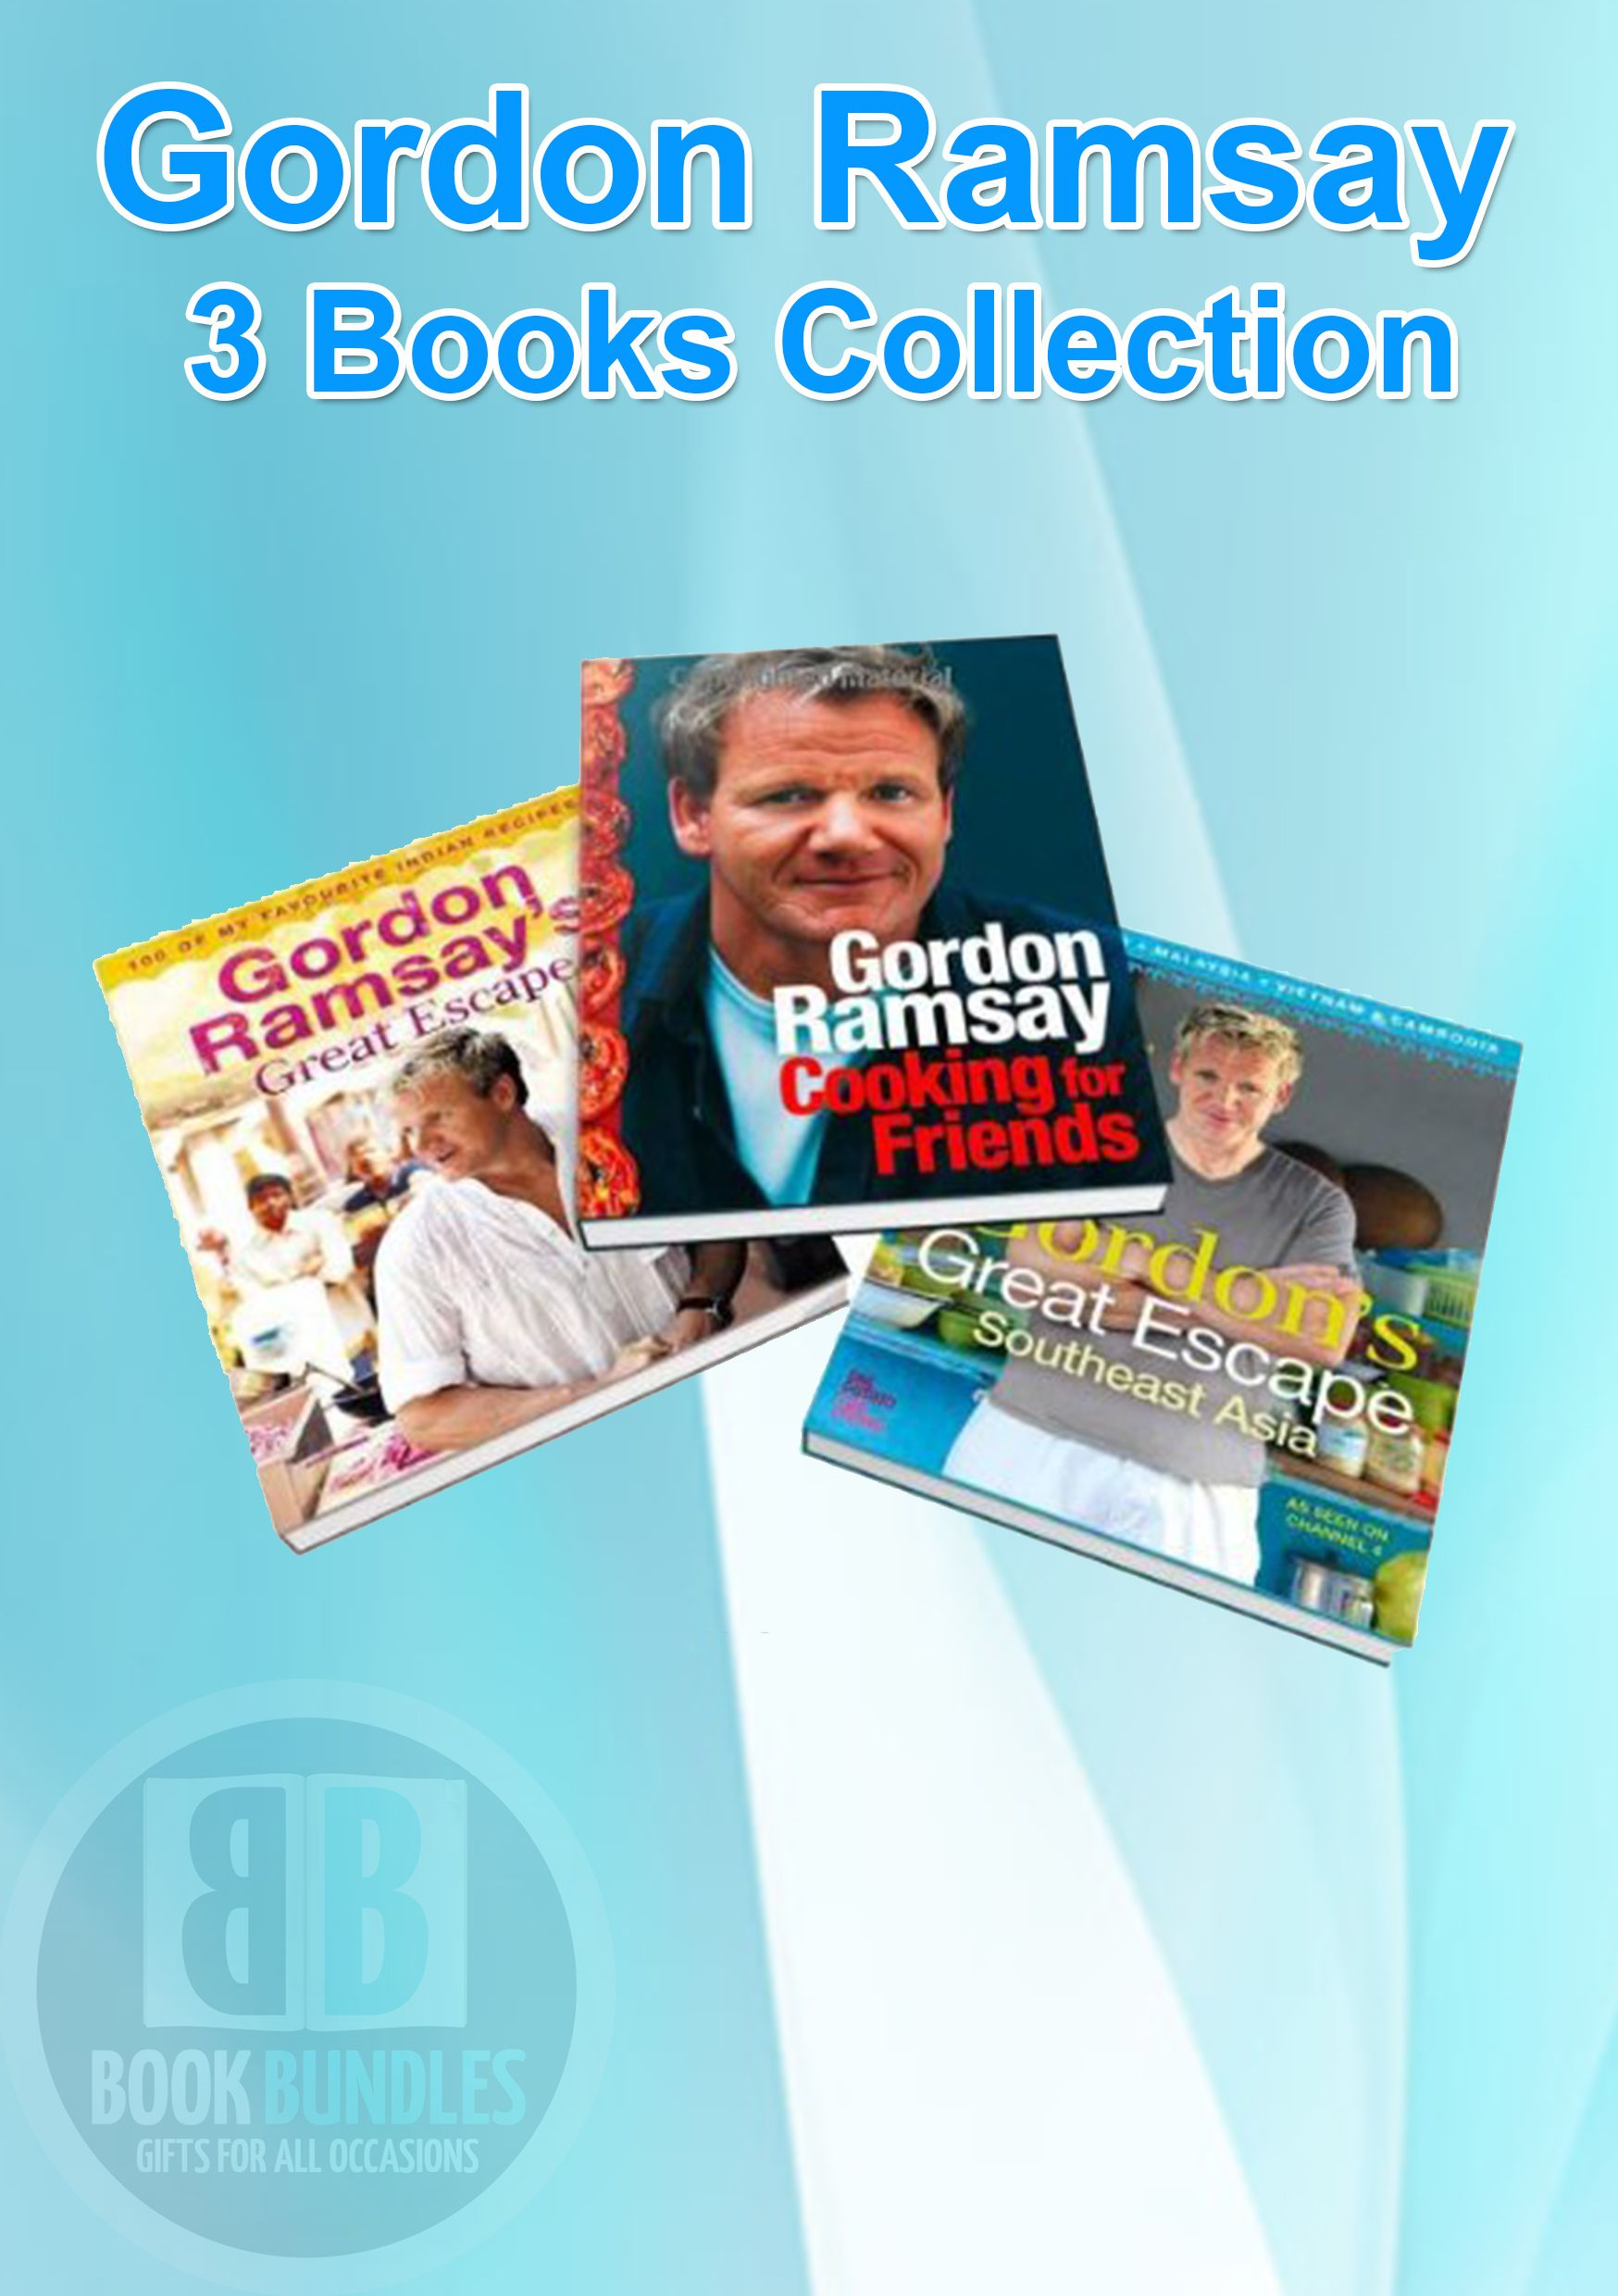 Gordon Ramsay 3 Books Collection at Best Price. #GordonRamsay #DietBooks #BookCollection #RecipeBooks #Books #DietCollection